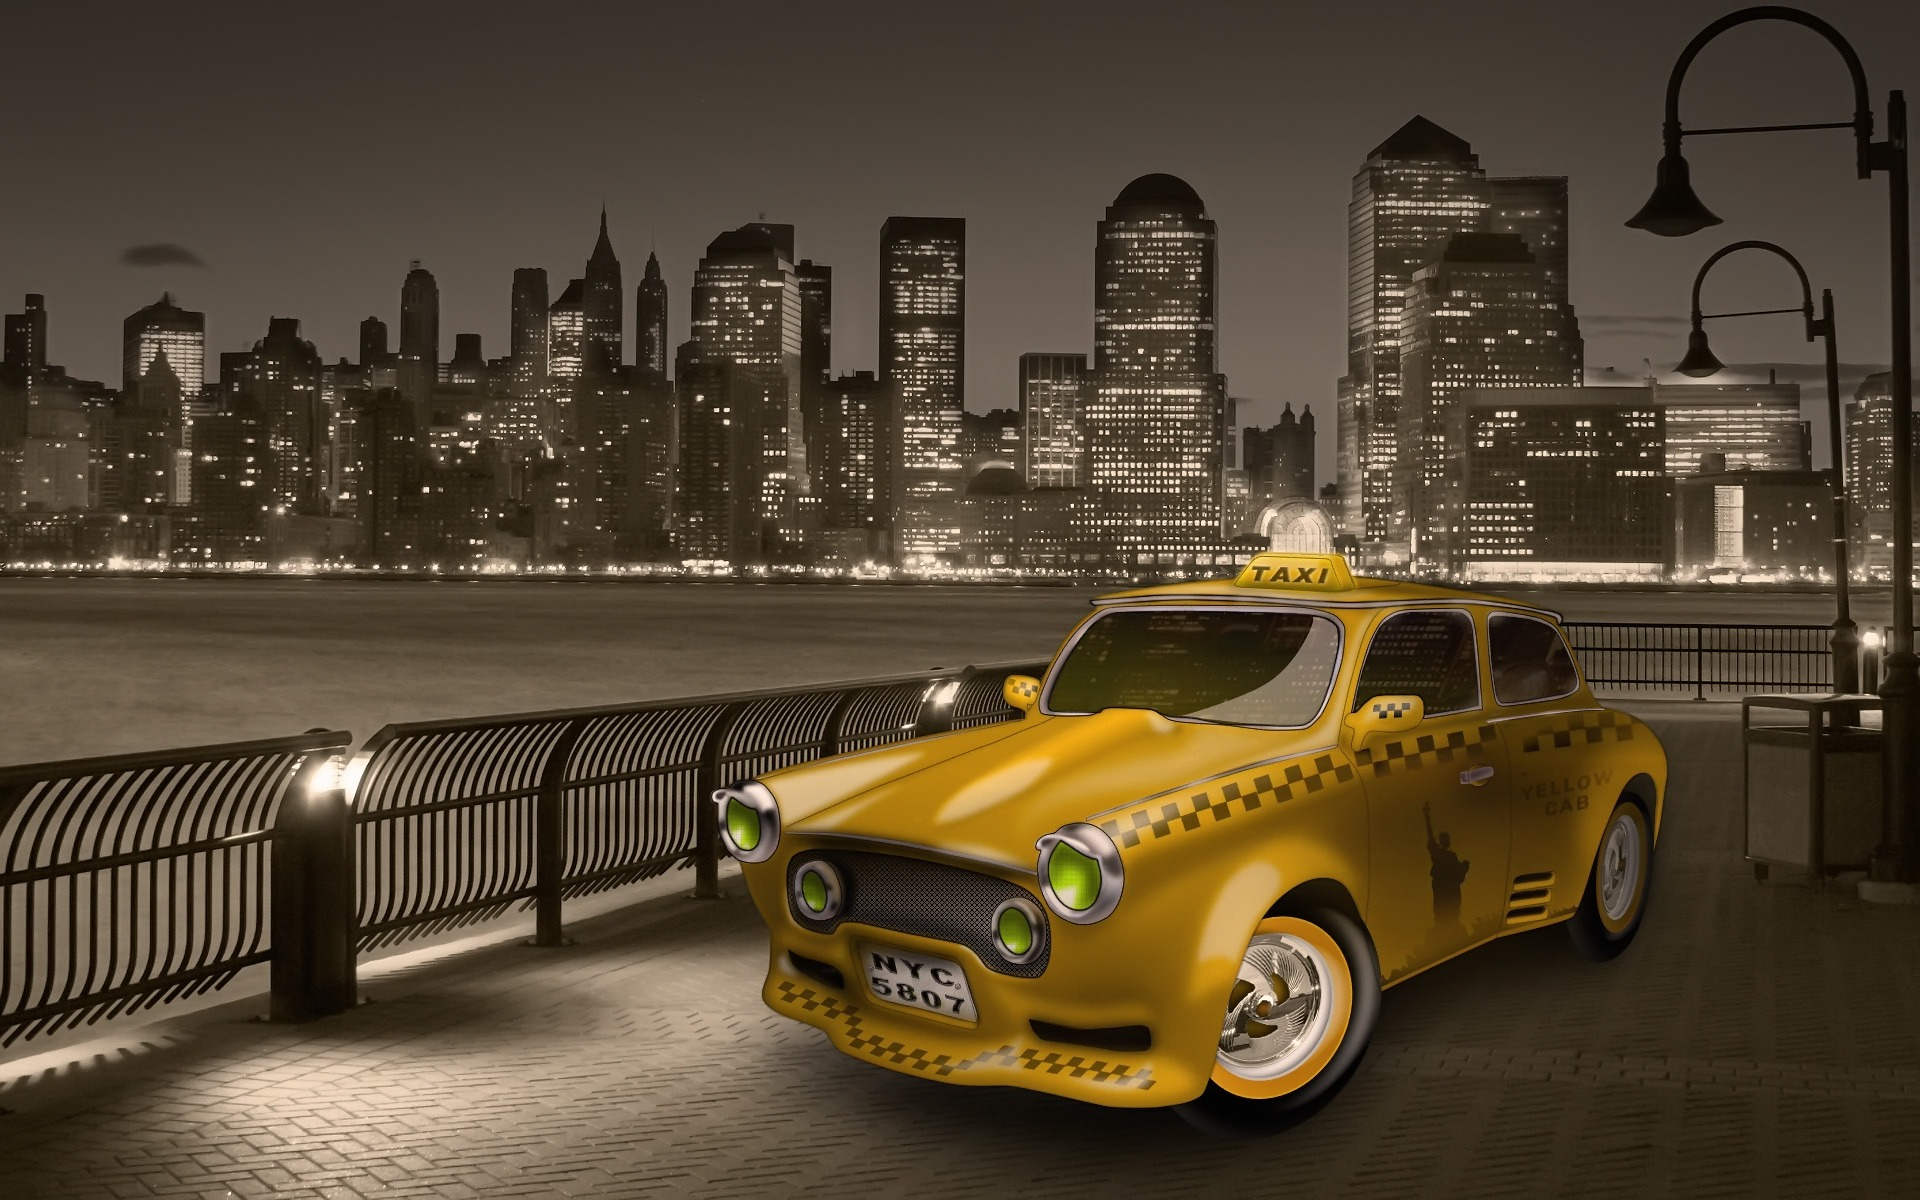 Bmw Car Hd Wallpaper For Mobile Yellow Cab Wallpapers Yellow Cab Stock Photos